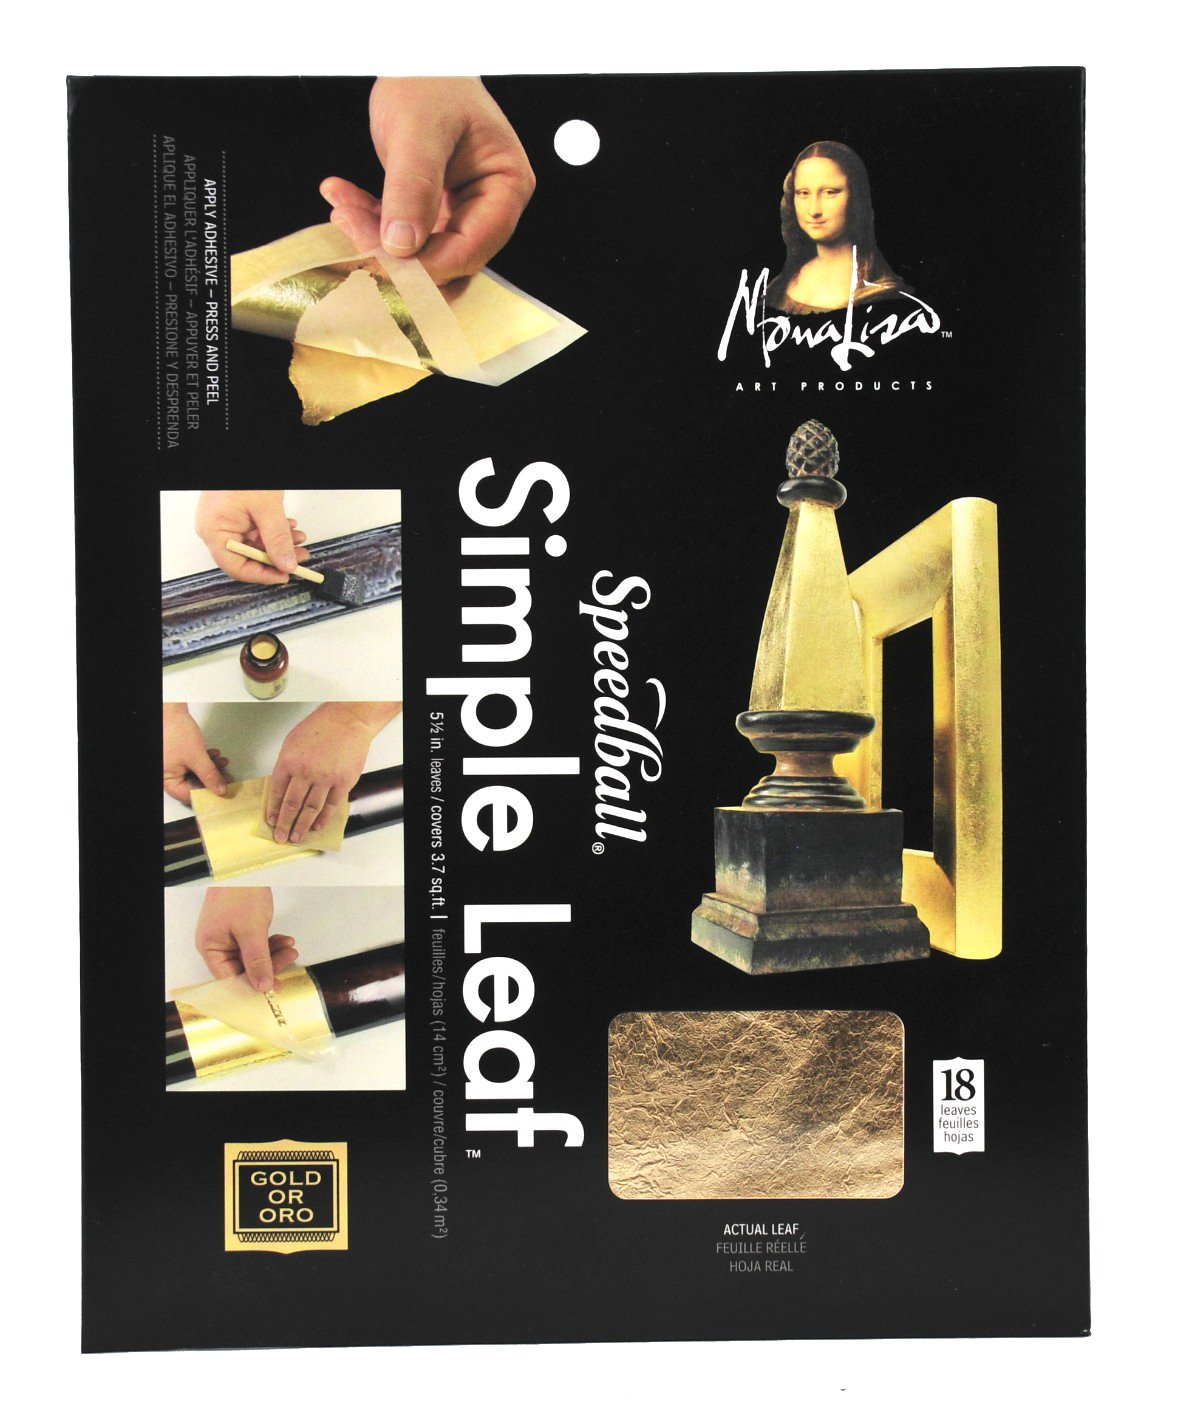 Speedball Art Products Mona Lisa Copper Simple Leaf, 18 Sheet Pack 10032